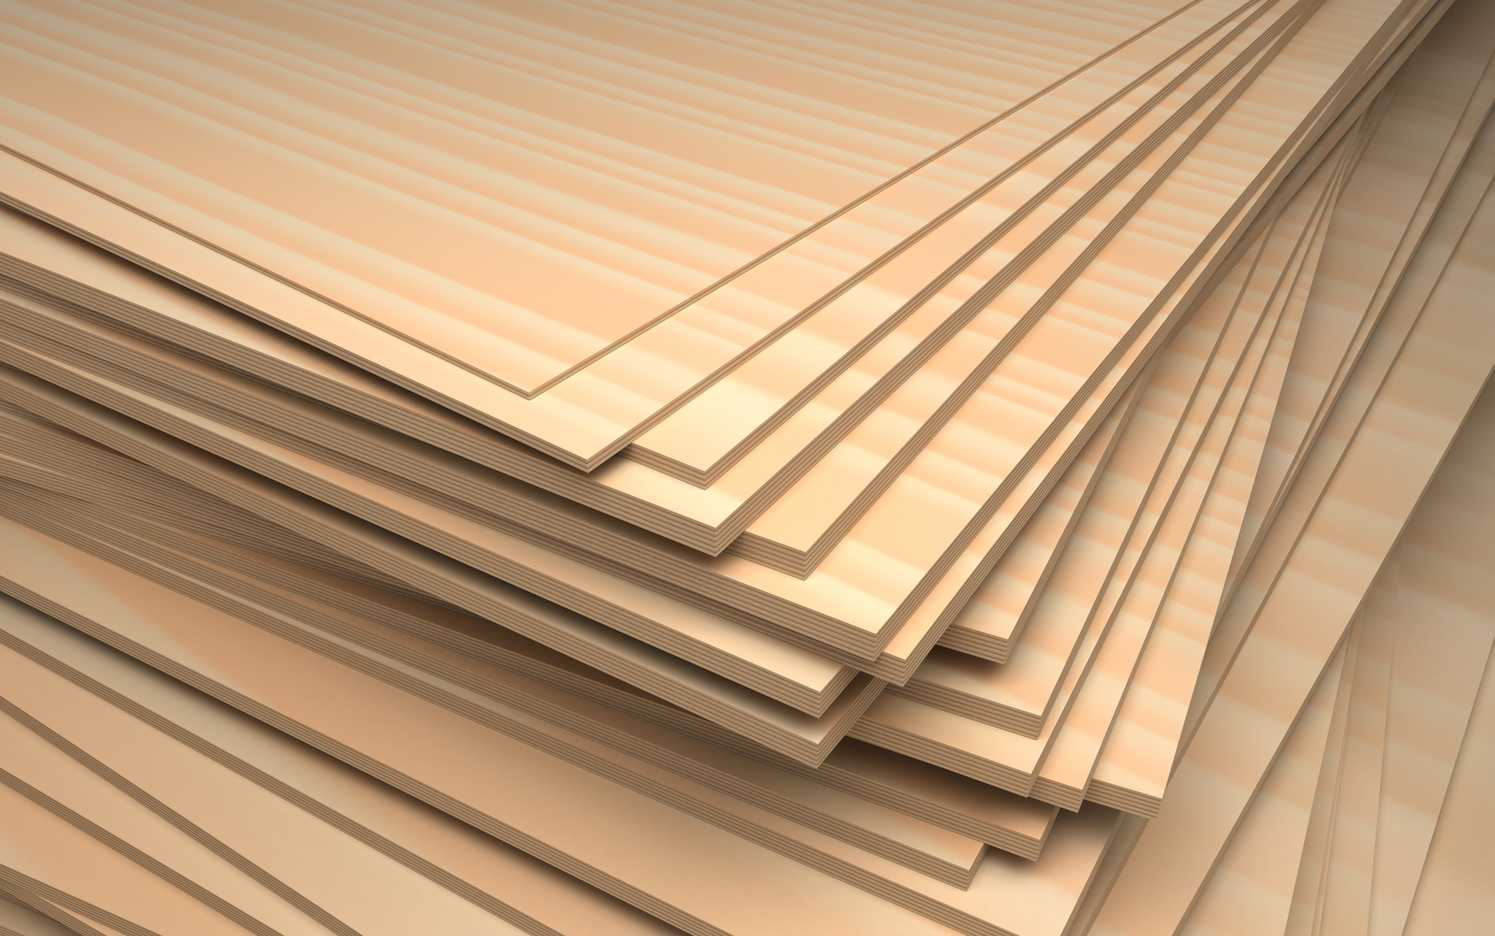 Plywood (Sumber: www.perthtimberco.com)